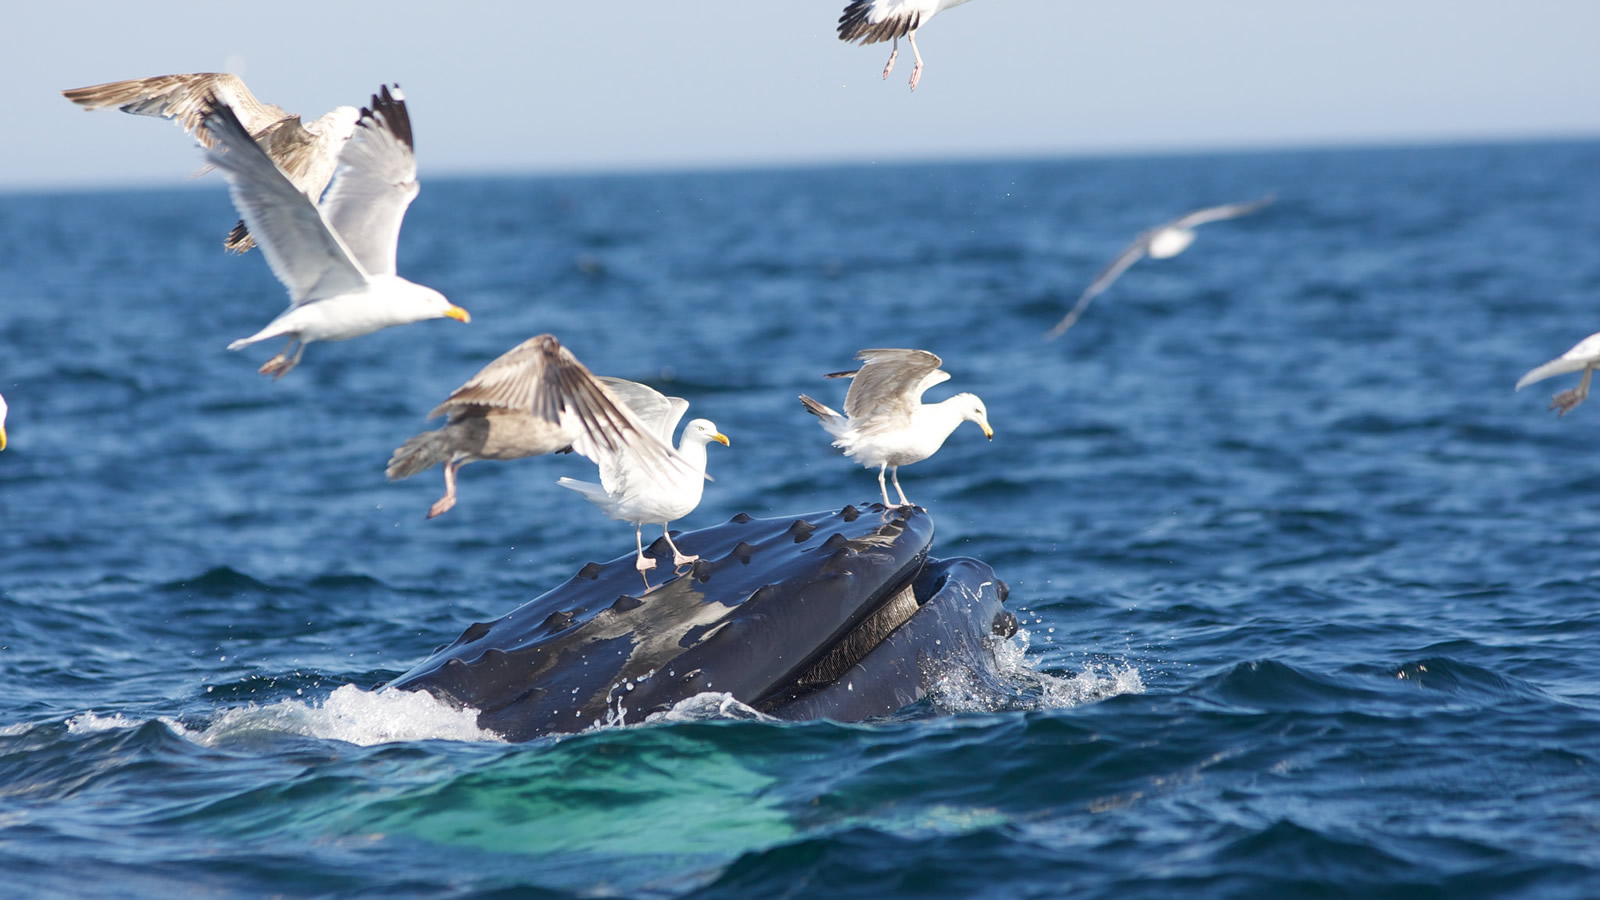 <h4>WILDLIFE OVER WASTE</h4><h5> Goal: To protect whales, dolphins, birds, fish and other water creatures from the harm of needless plastic pollution, let's ban take-out plastic foam cups and containers. </h5><em>NOAA</em>